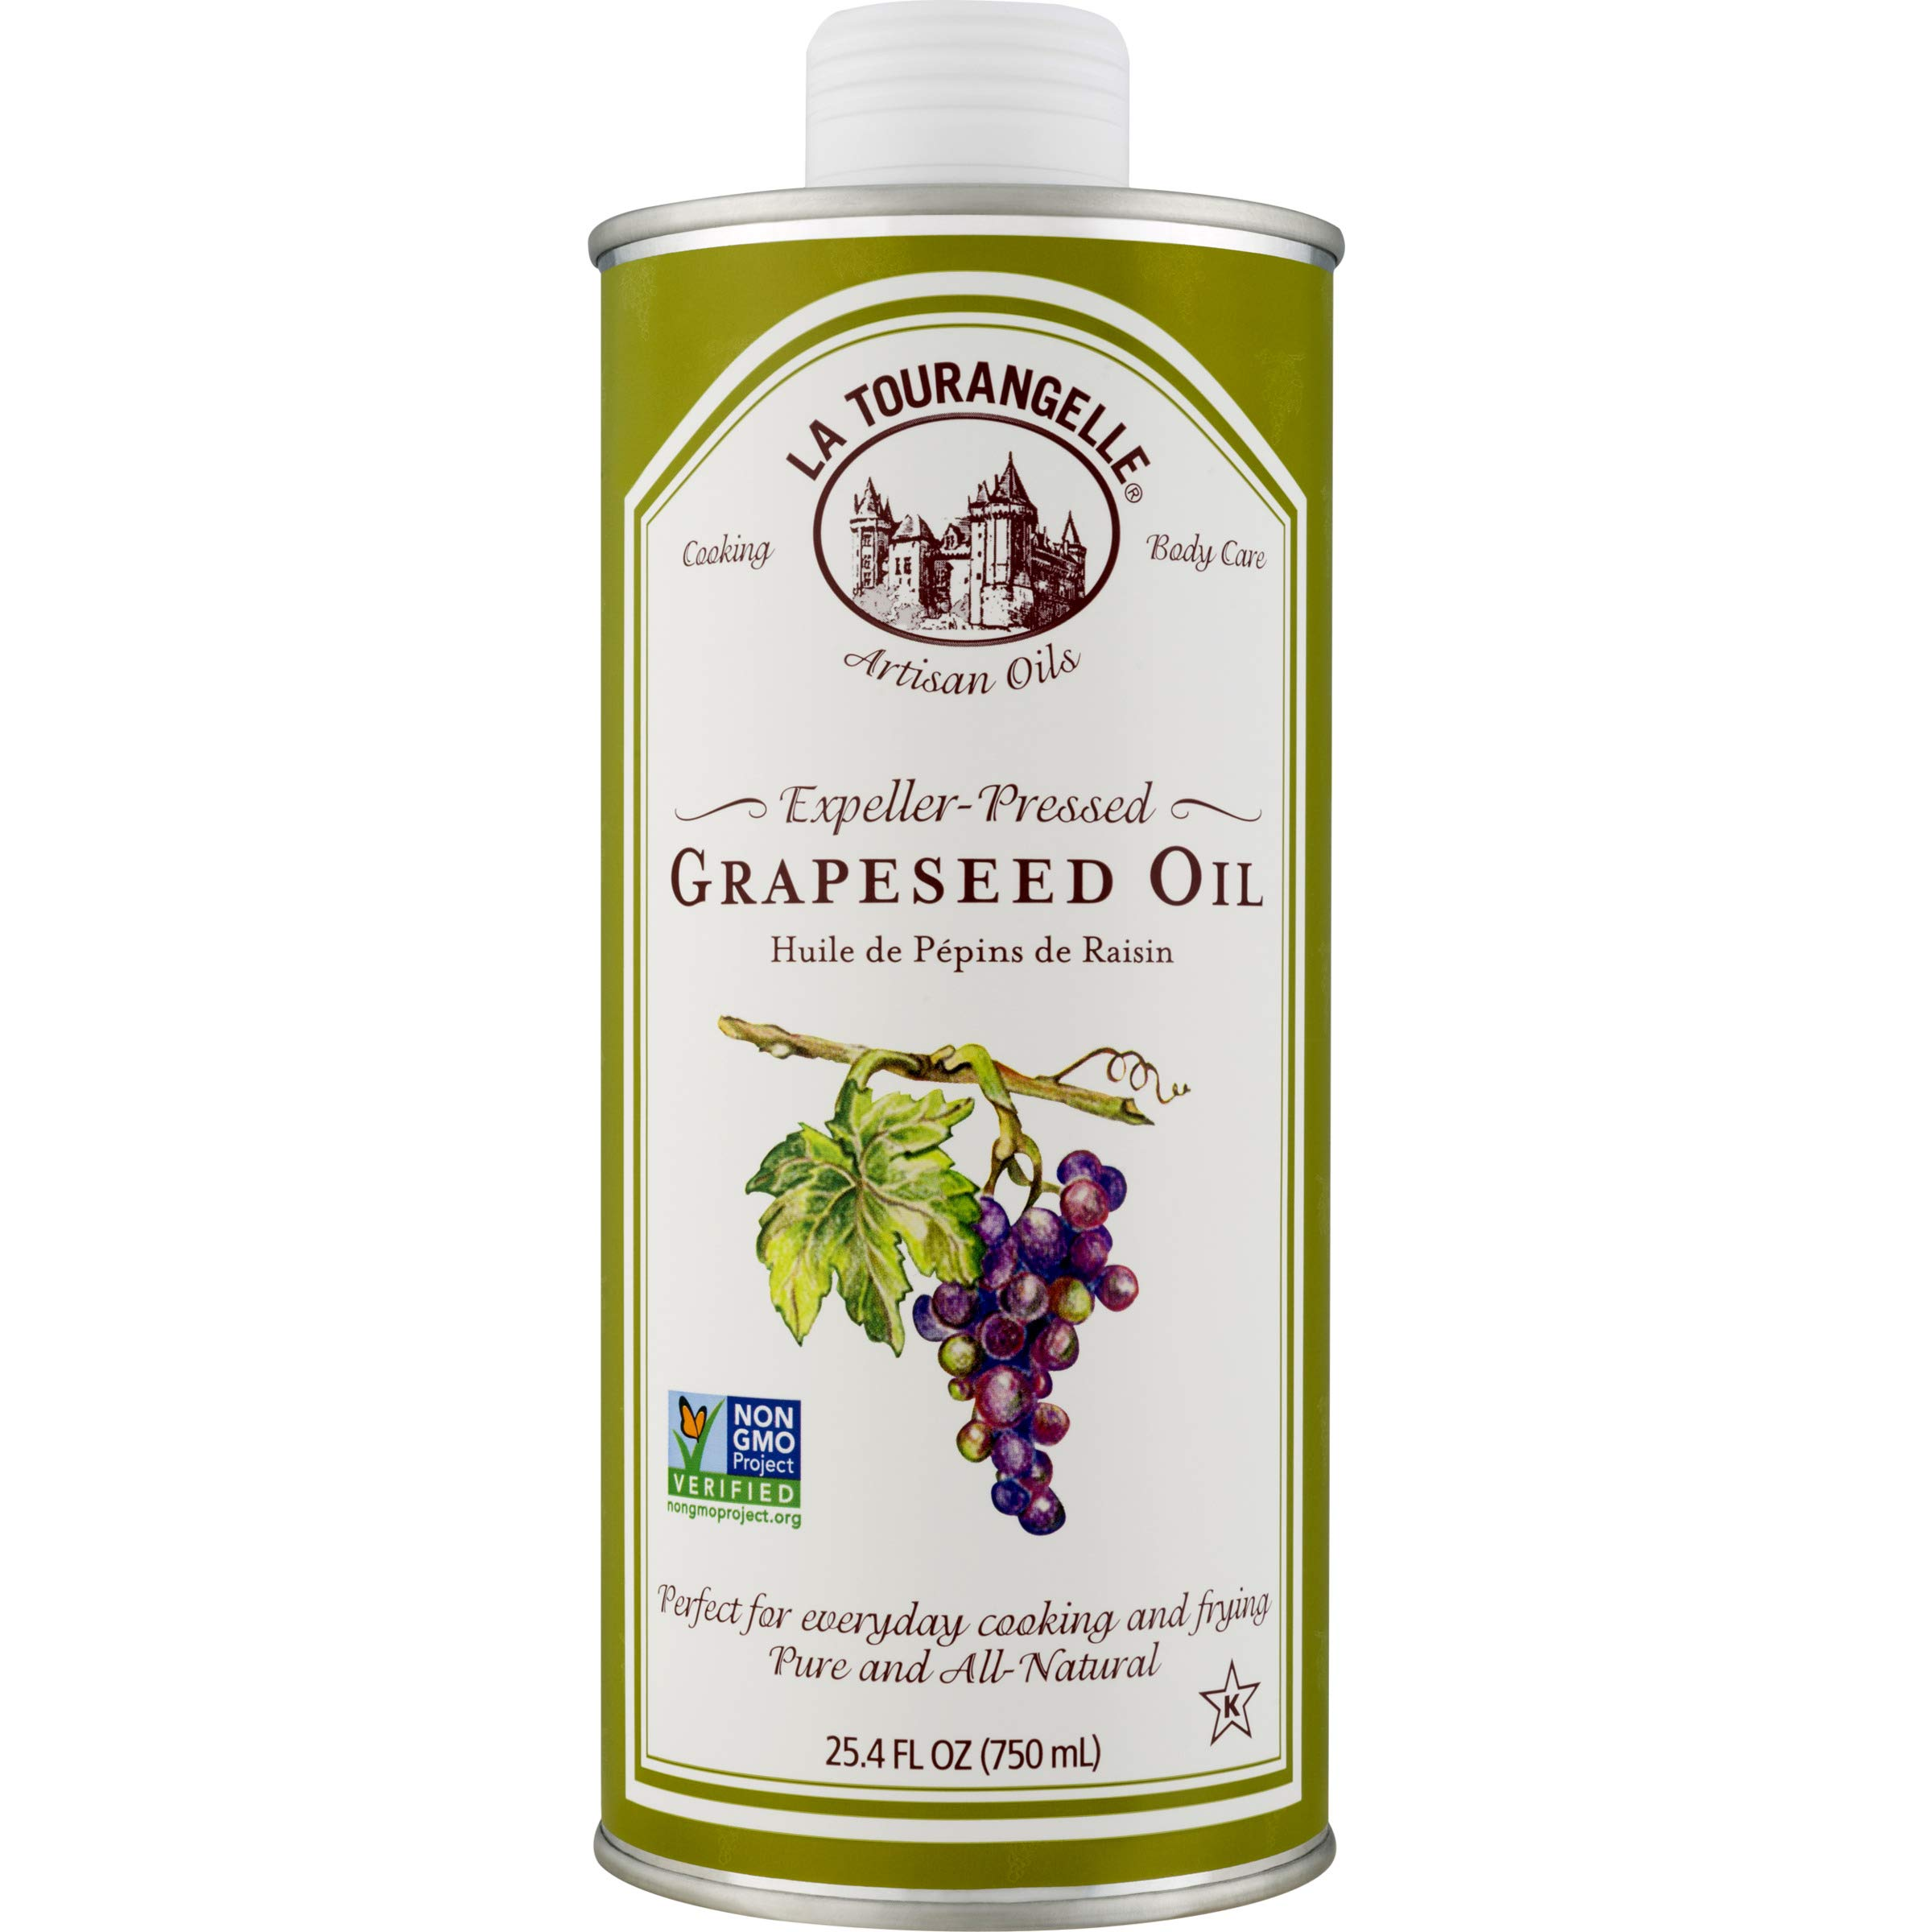 La Tourangelle Grapeseed Oil 25.4 Fl Oz, All-Natural, Artisanal, Great for Cooking, Sauteing, Marinating, and Dressing by La Tourangelle